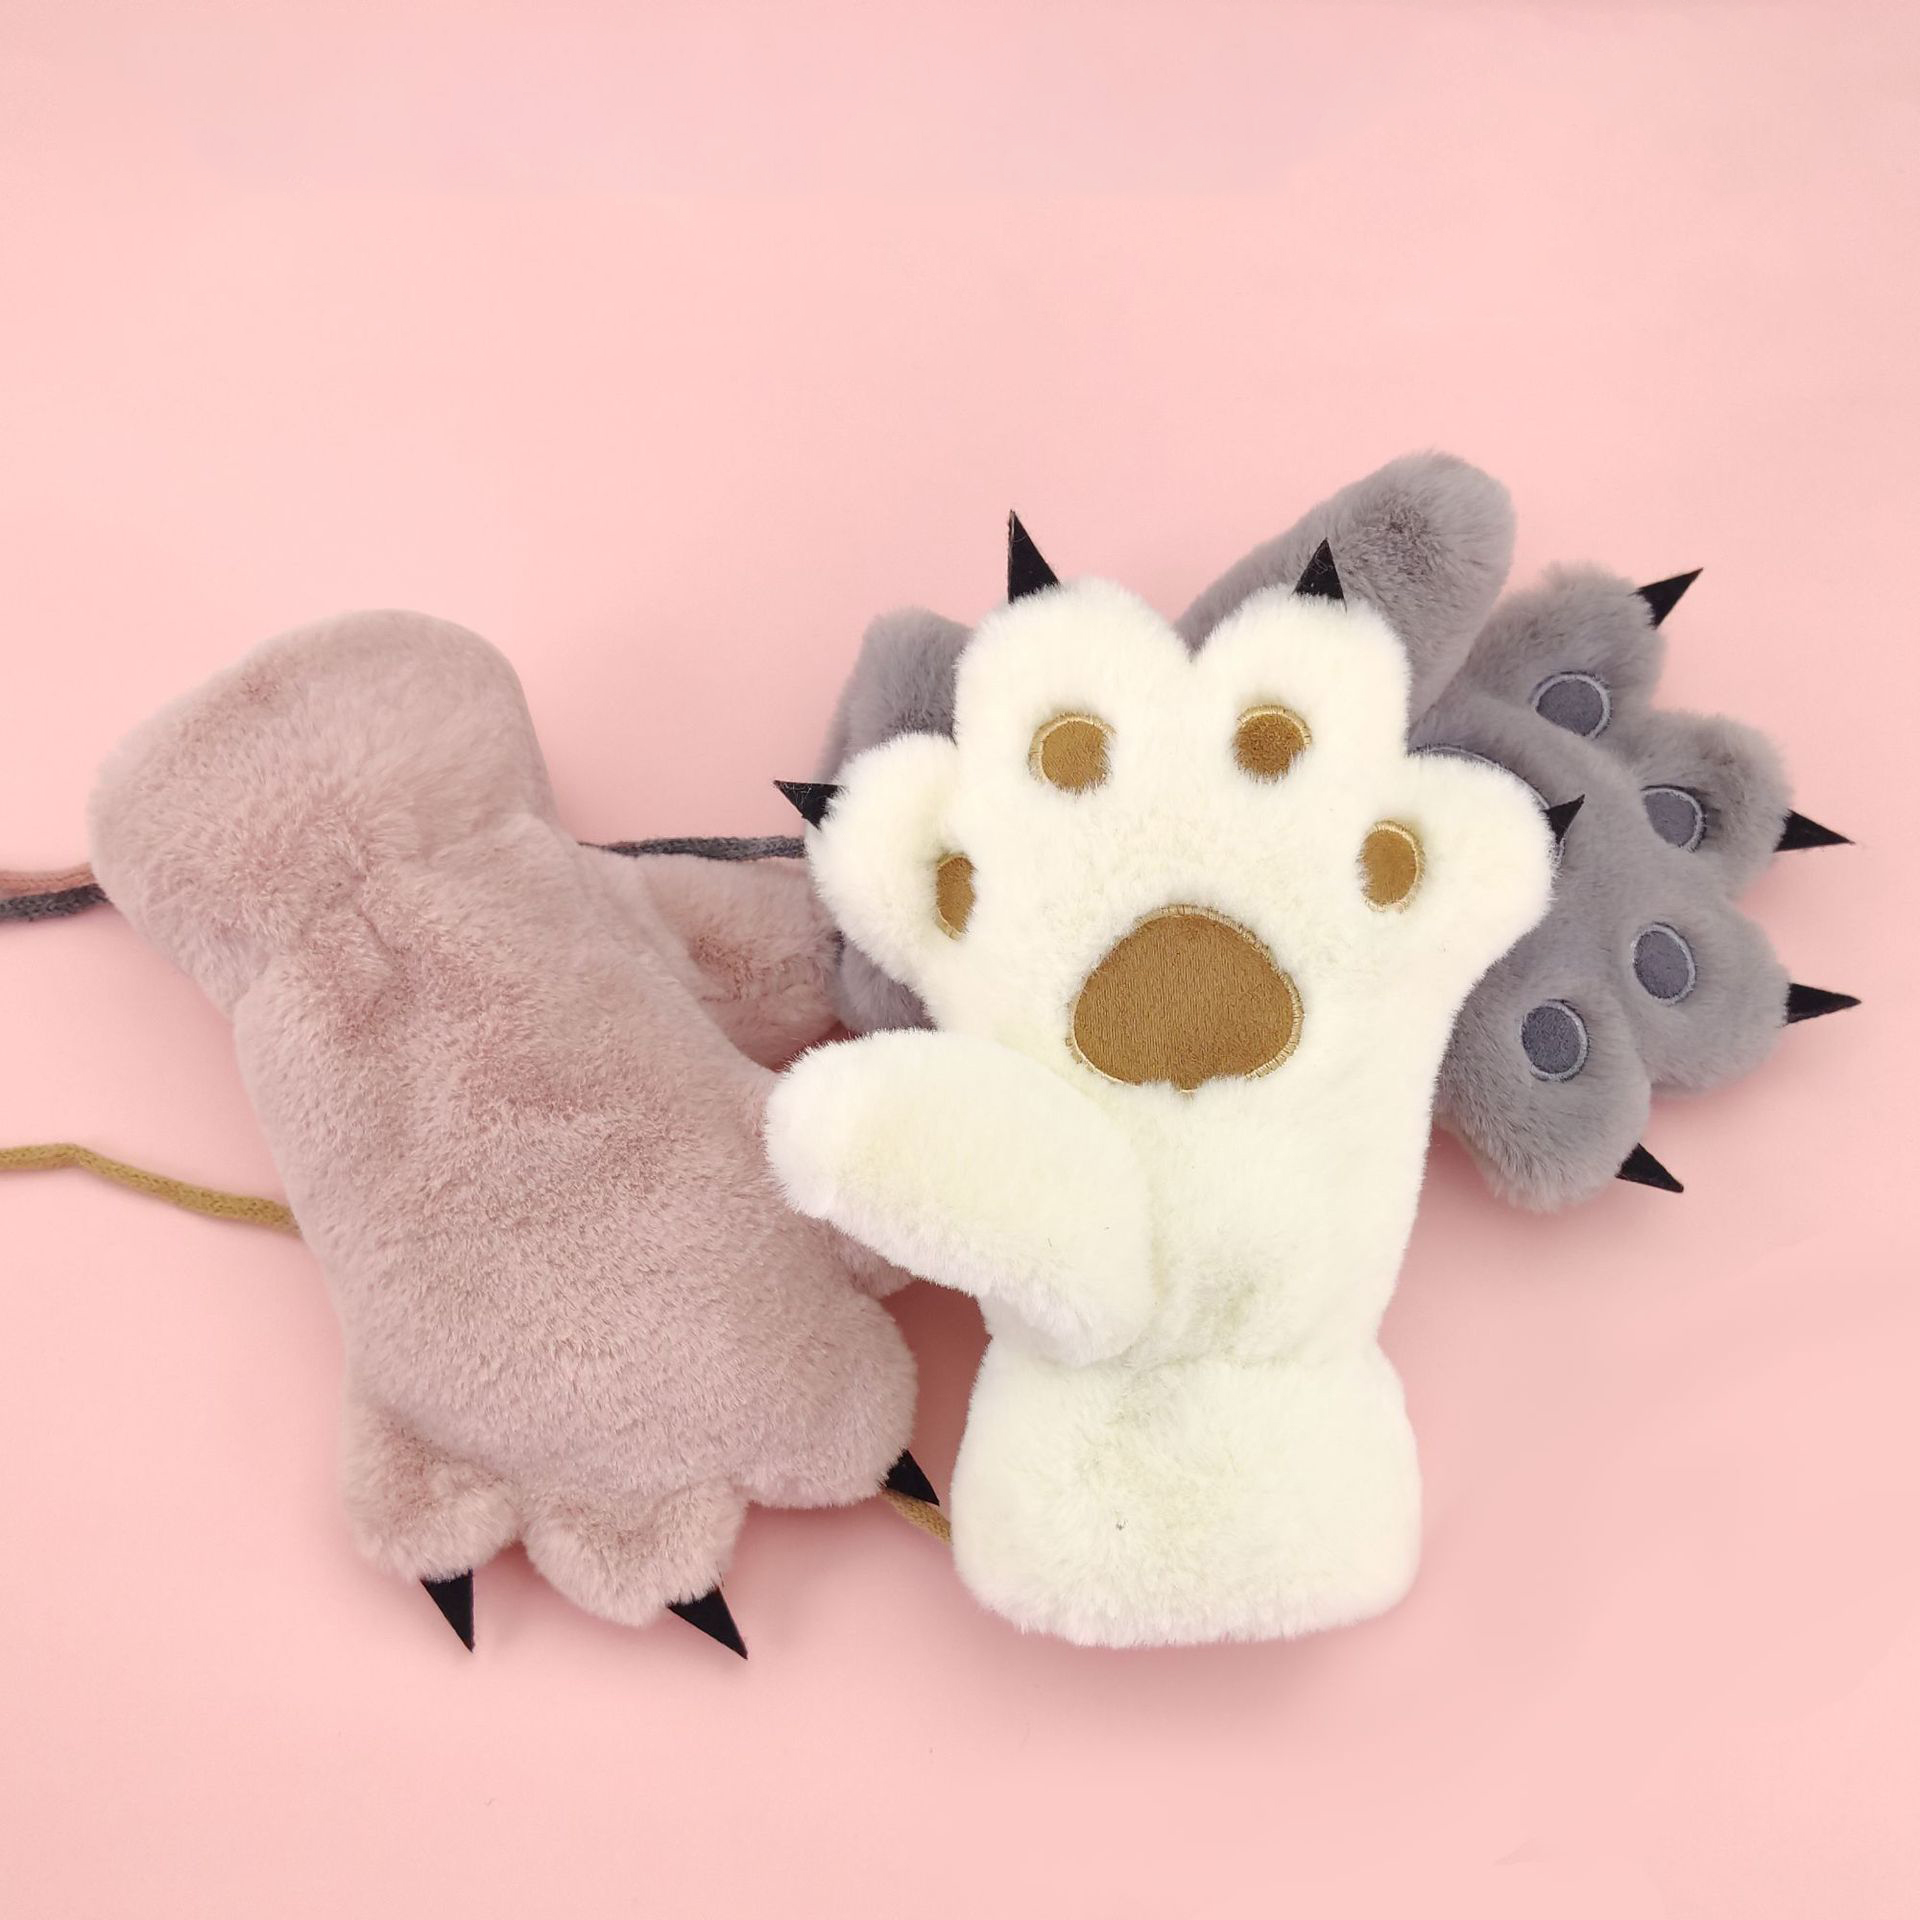 Animal Cartoon Paw Gloves Plush Keep Warm Bear Claws Cosplay Costume Gloves for Kids Boy Girl, Under 11 Years Old Gifts